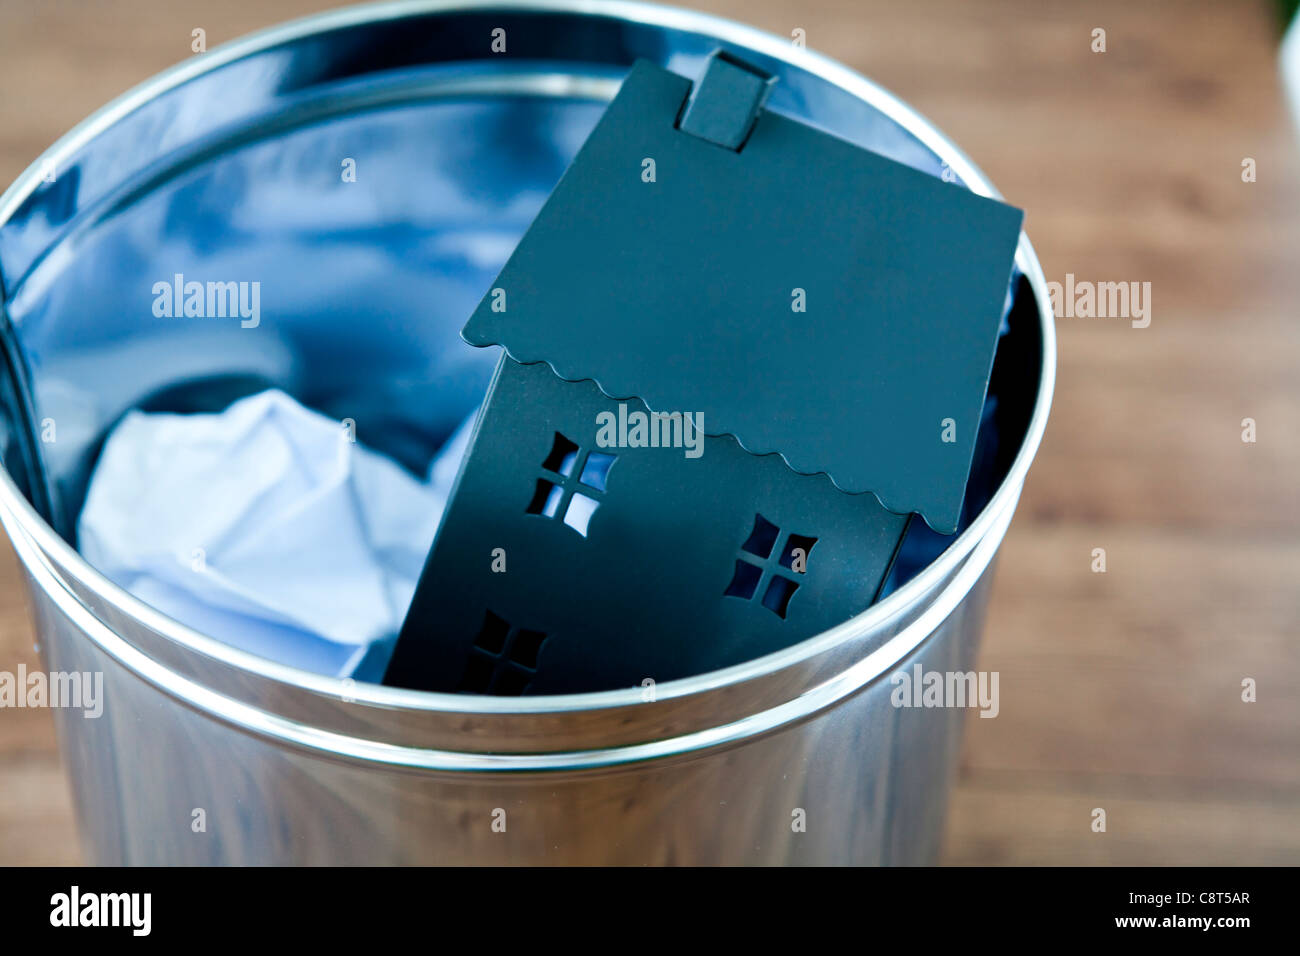 Model of house and crumbled paper in garbage can - Stock Image